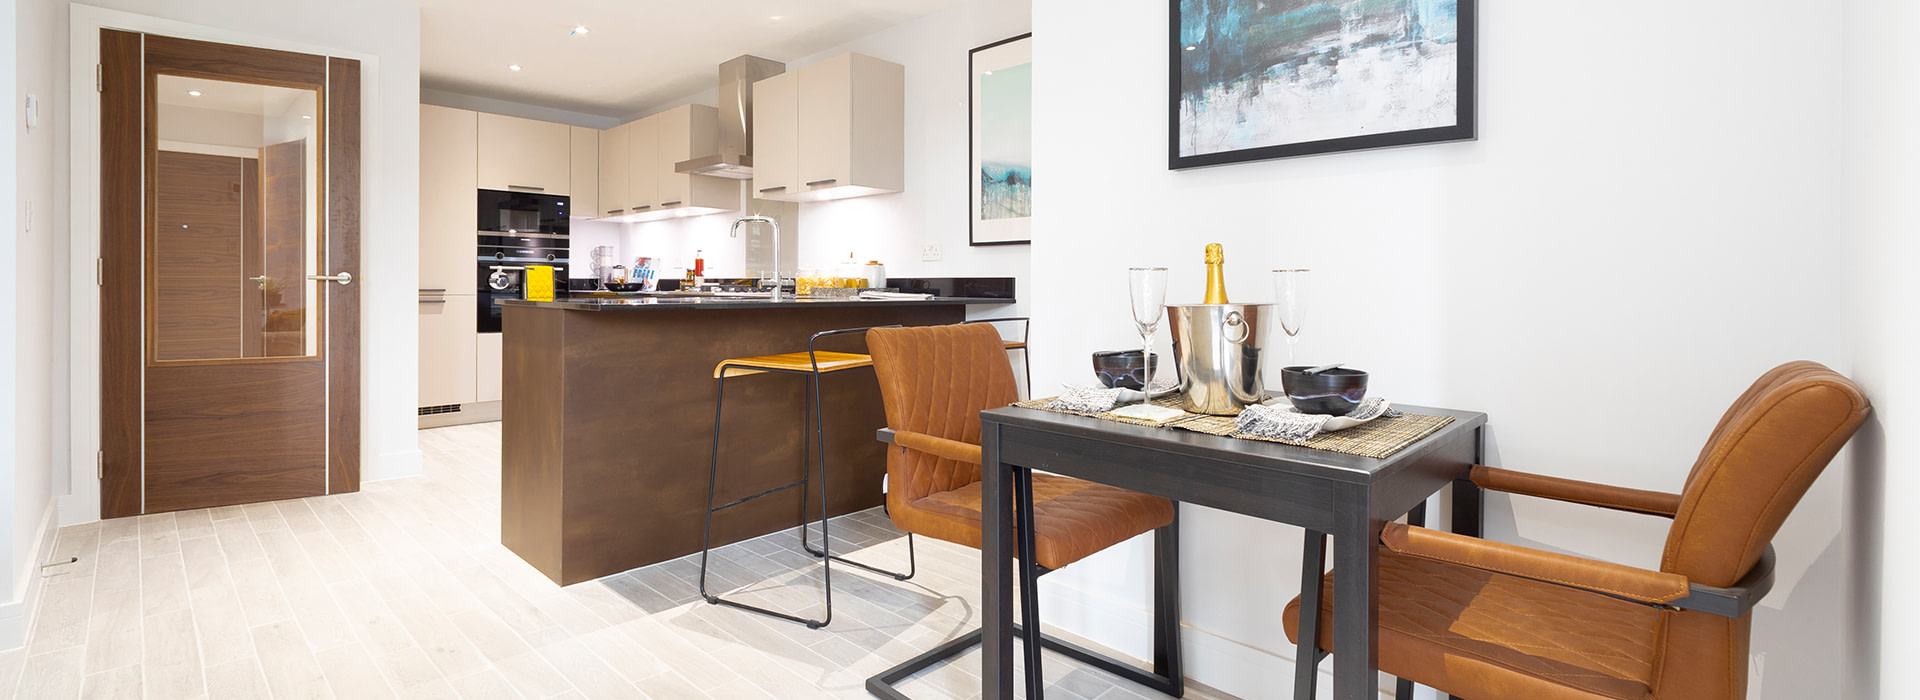 Two seater table in modern kitchen